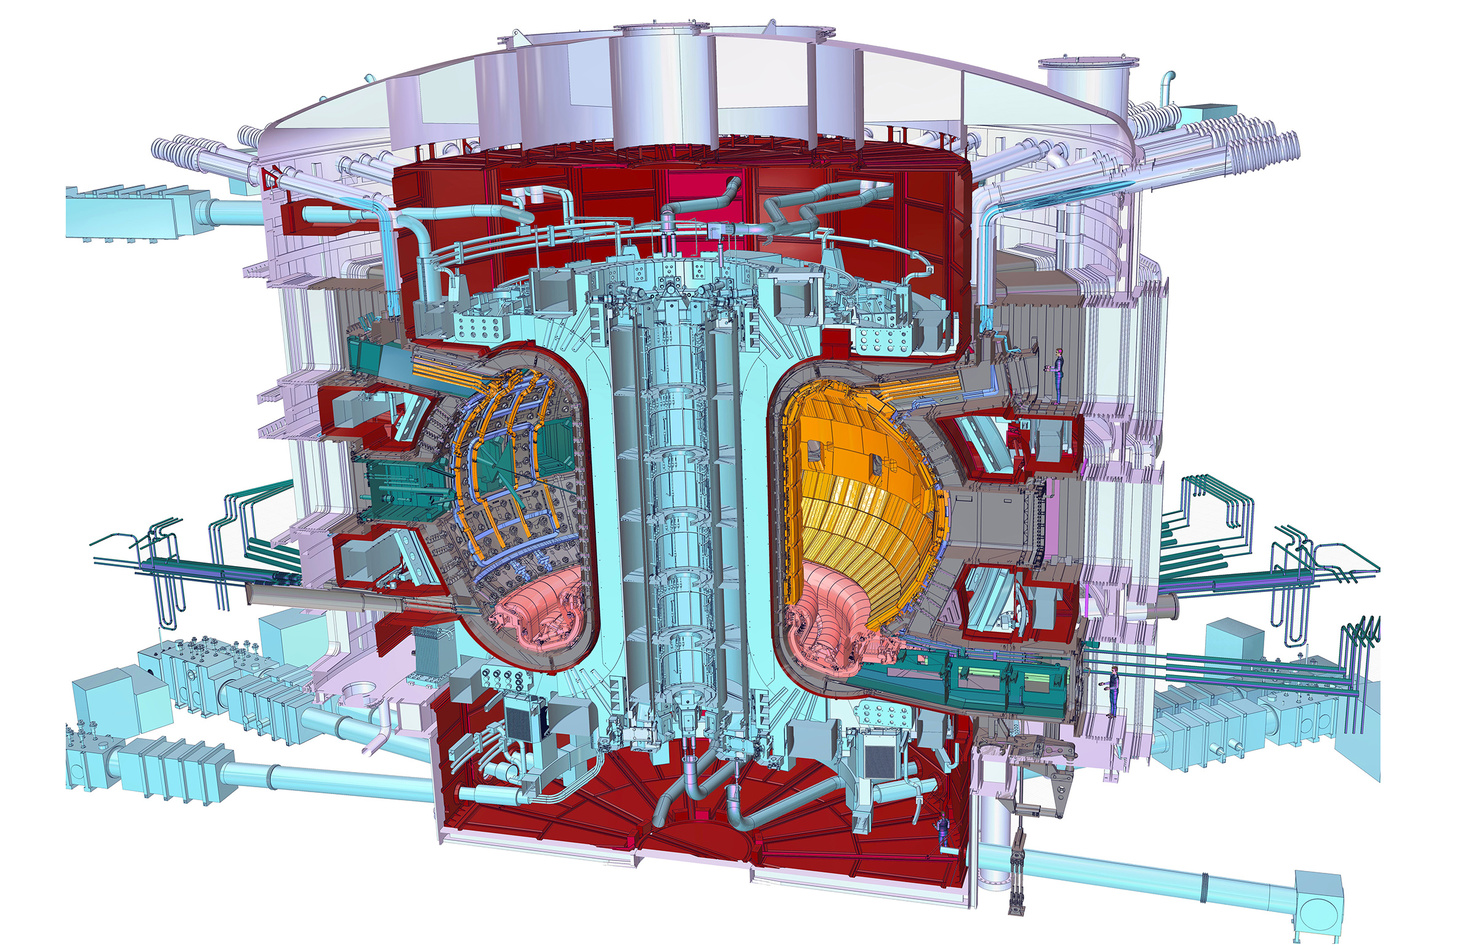 Nuclear fusion the clean power that will take decades to master a cross section cutaway of iter for scale note the human under the ccuart Images